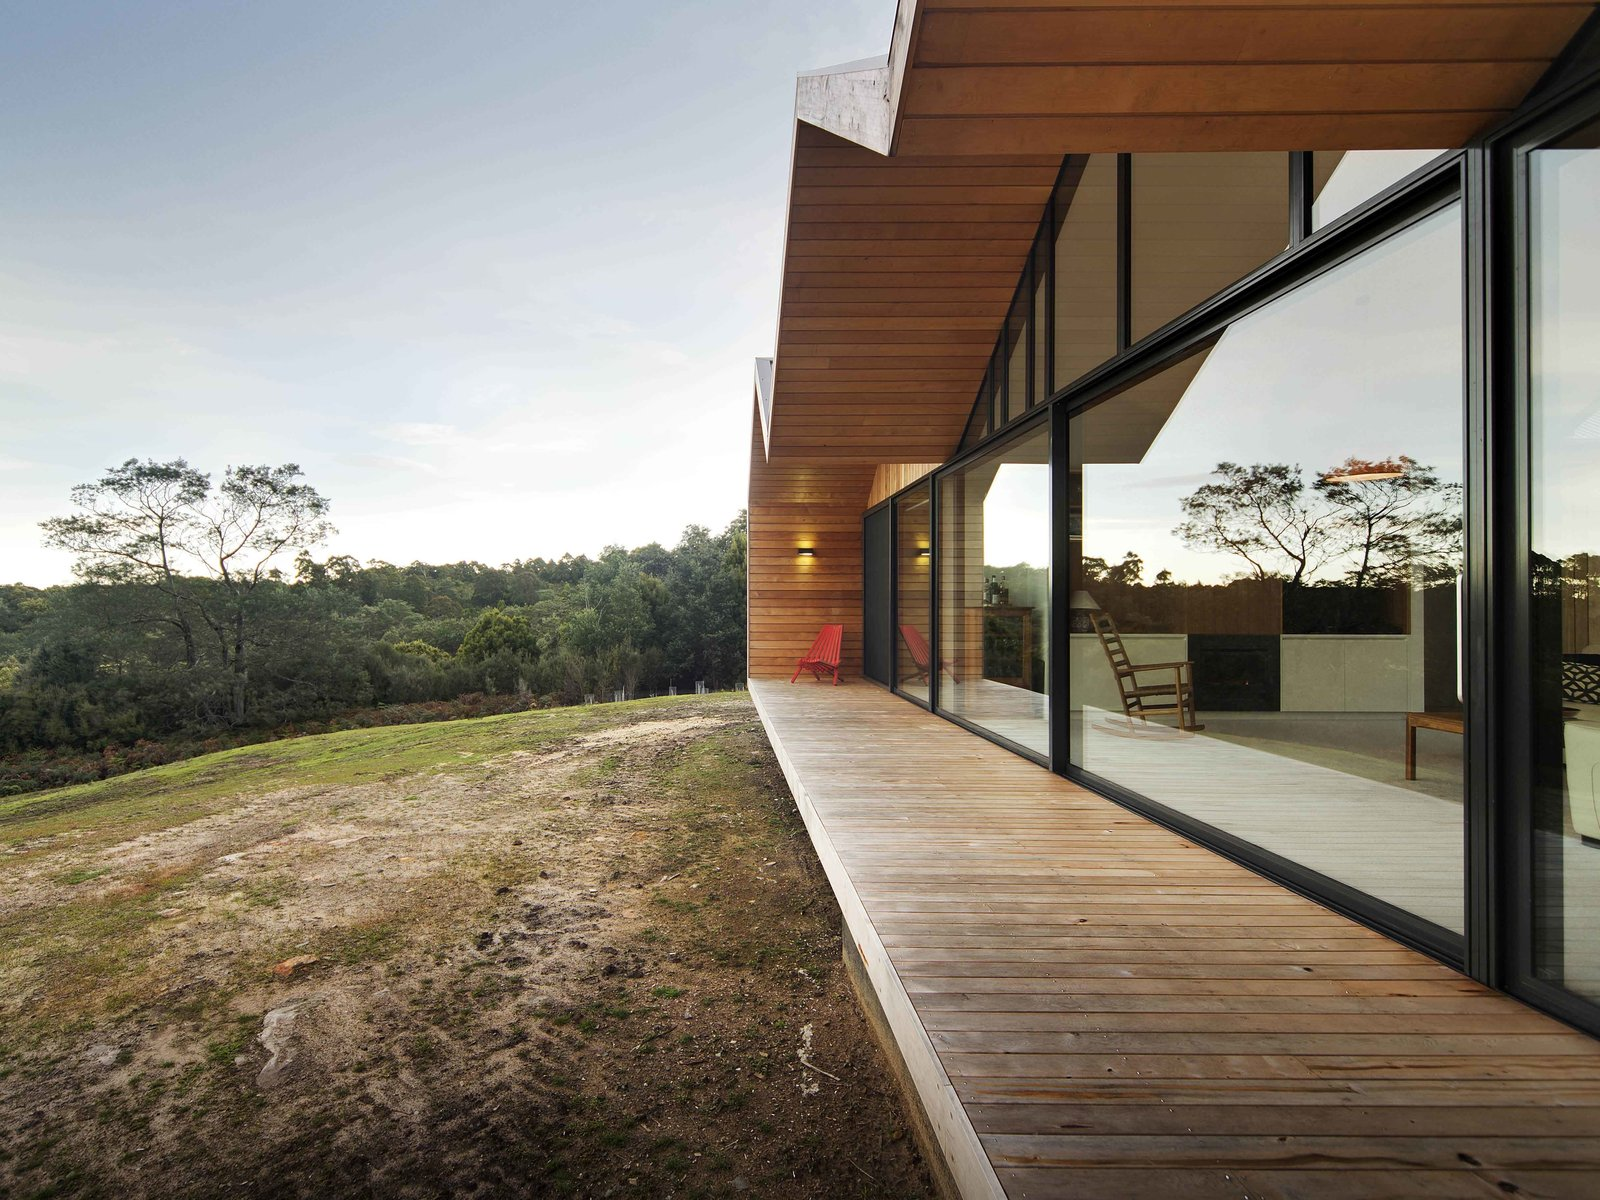 "House Building Type, Outdoor, Wood Siding Material, Large Patio, Porch, Deck, Wood Patio, Porch, Deck, and Slope Constructing a largely timber house in a bush fire-prone landscape wasn't easy. ""We had to negotiate with the council and building surveyor,"" Crump explains. To solve the challenge, the architect designed an outer, protective skin for the home that's clad with metal; it pushes beyond the building envelope to provide covering for outdoor living spaces. The inset walls are lined with local shiplap Celery Top Pine.  Best Photos from Lookout House"